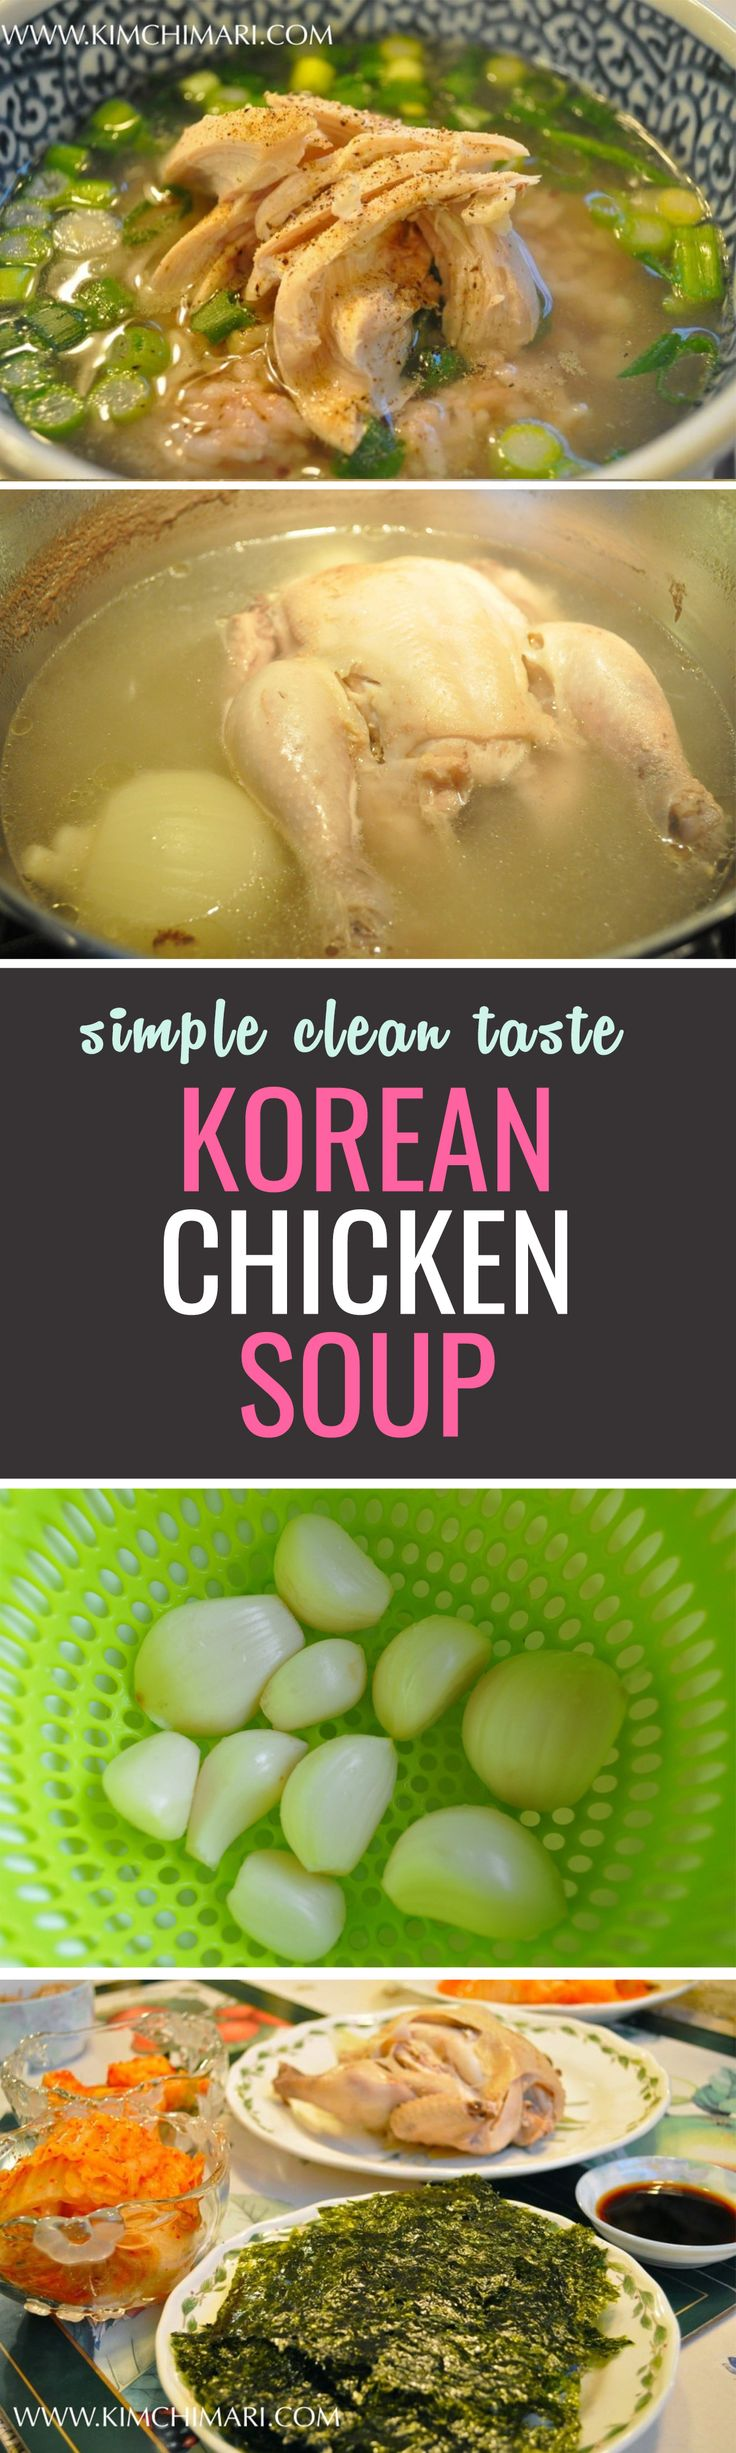 A dish that appreciates the simple taste of chicken. Season the soup with some pepper and get your rice ready!